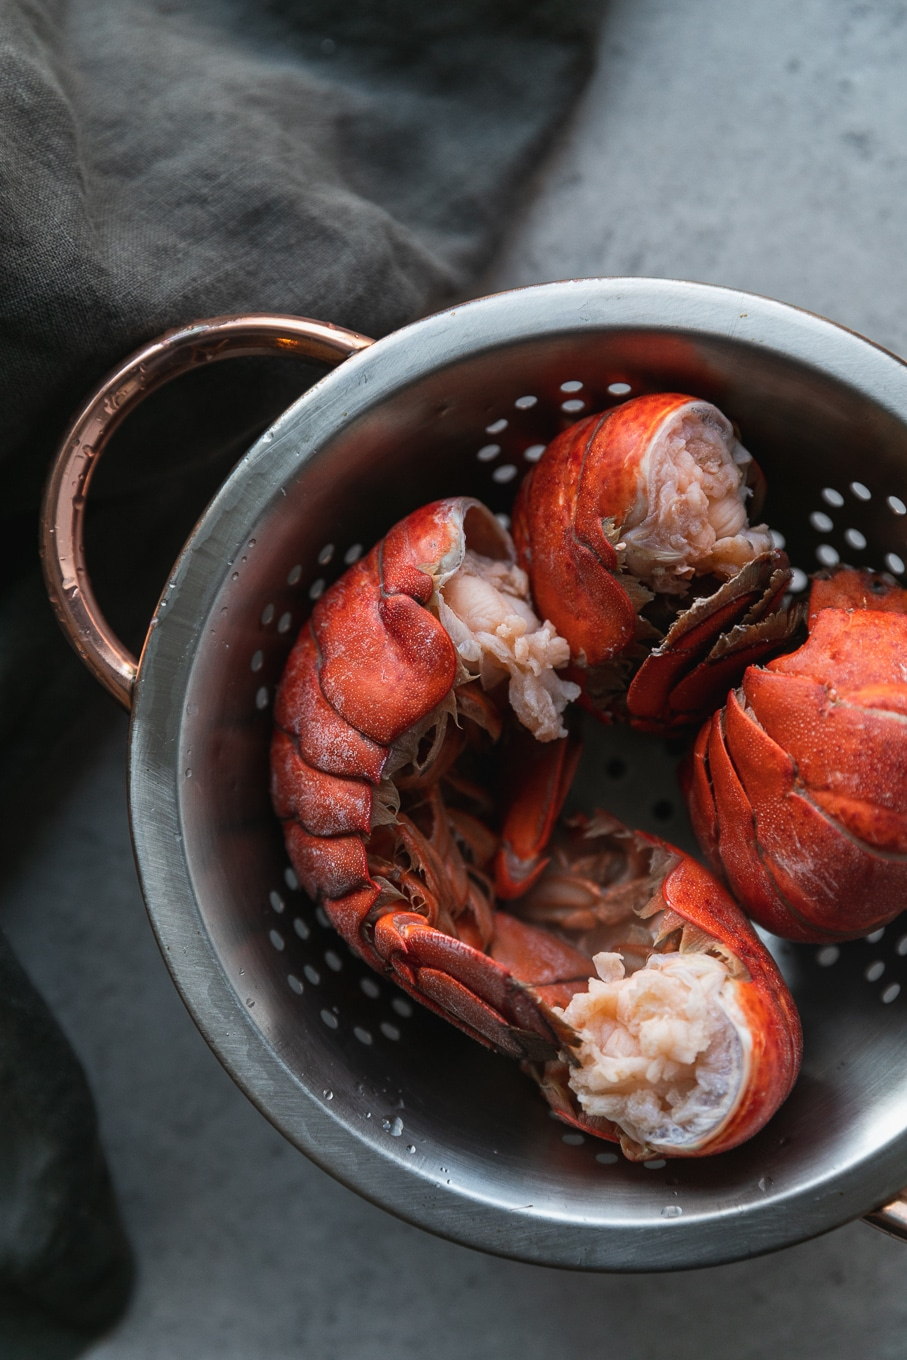 Overhead shot of a colander filled with lobster tails